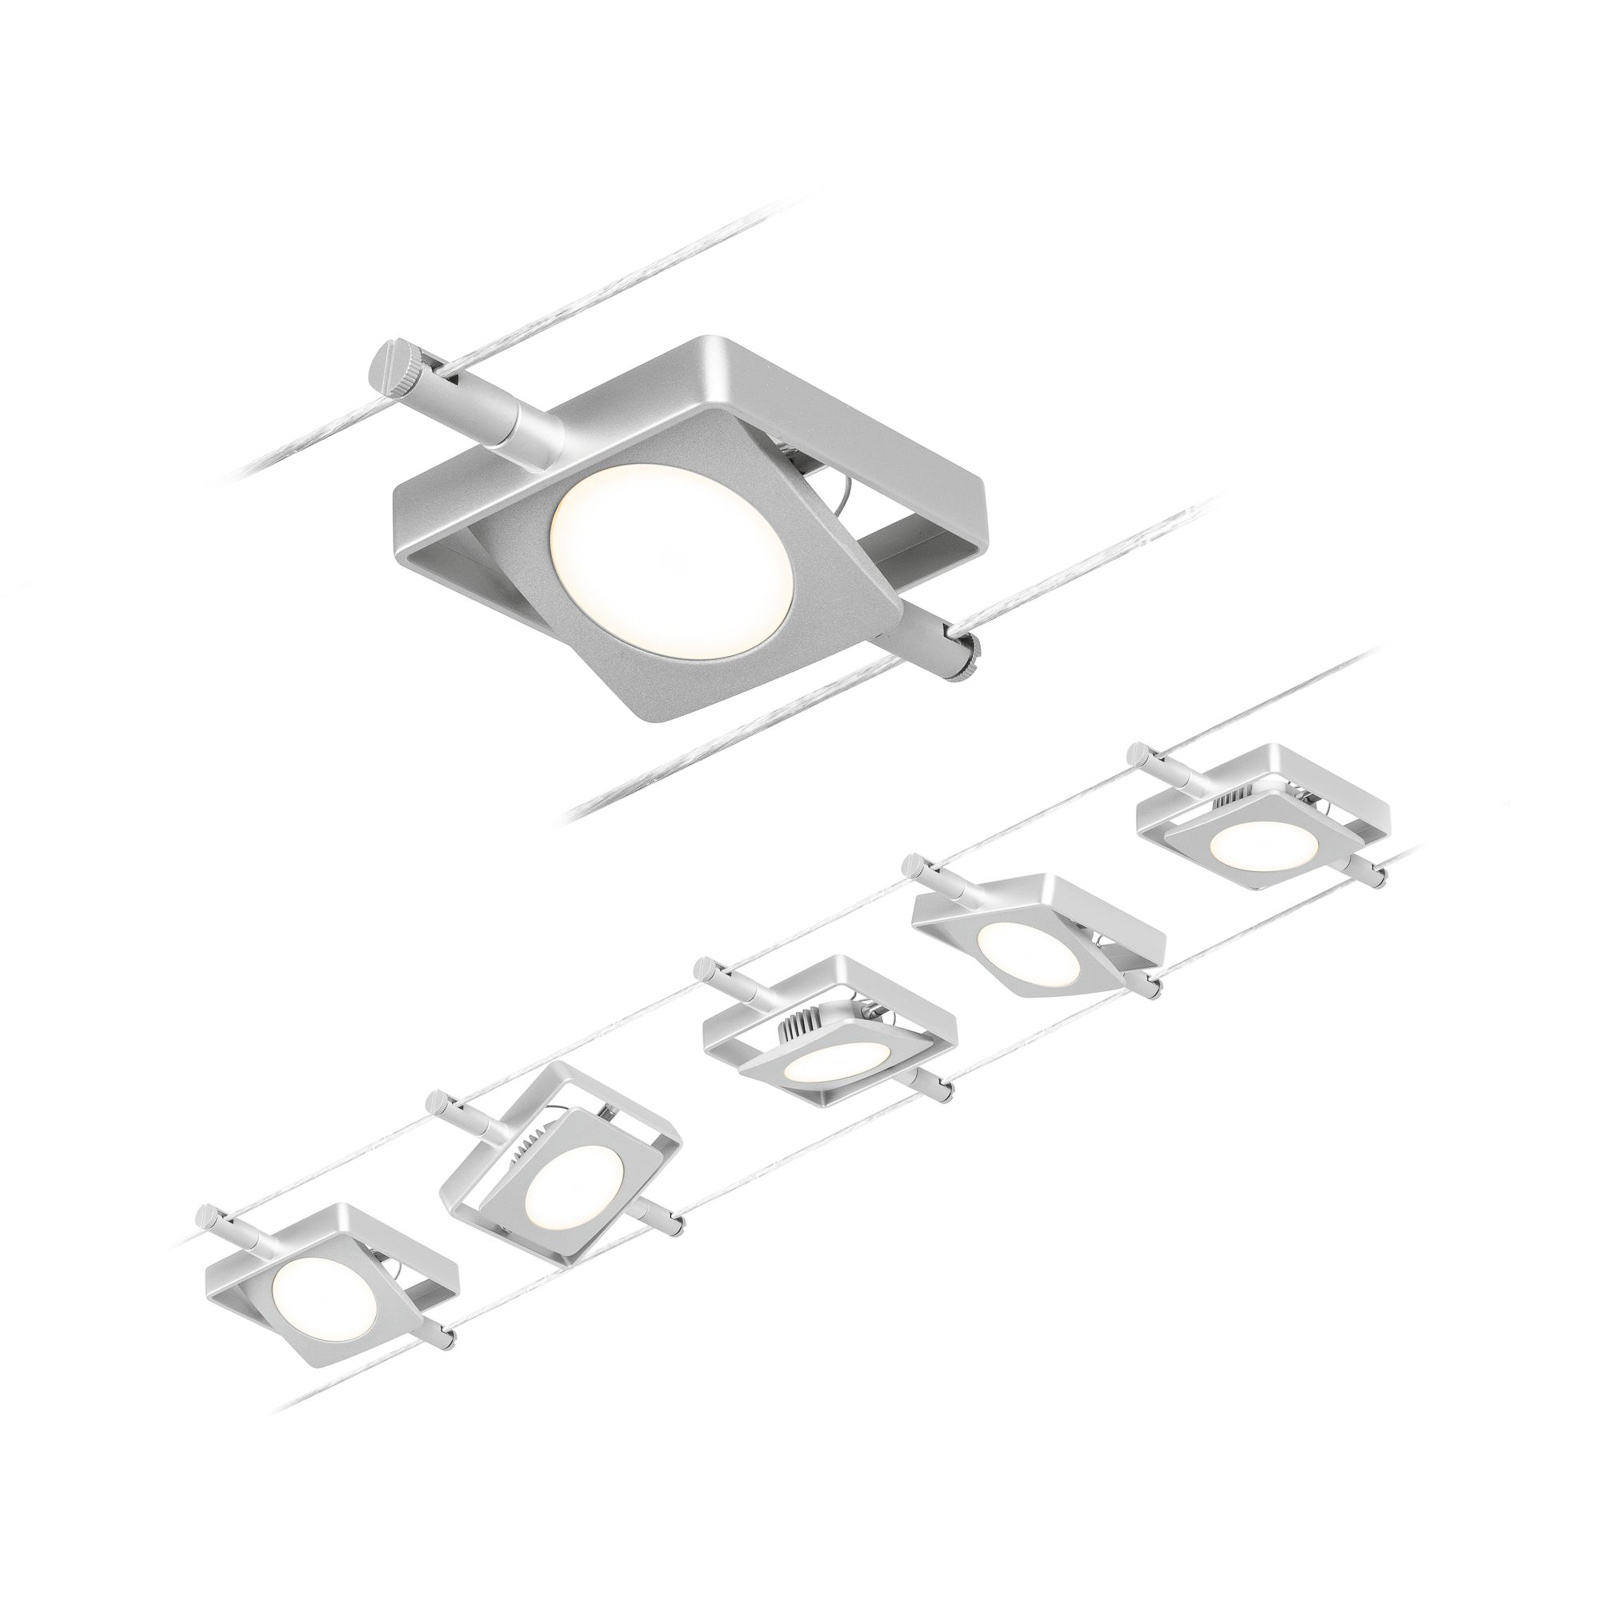 Paulmann Wire MacLED LED cable system, 5-bulb_7602568_1